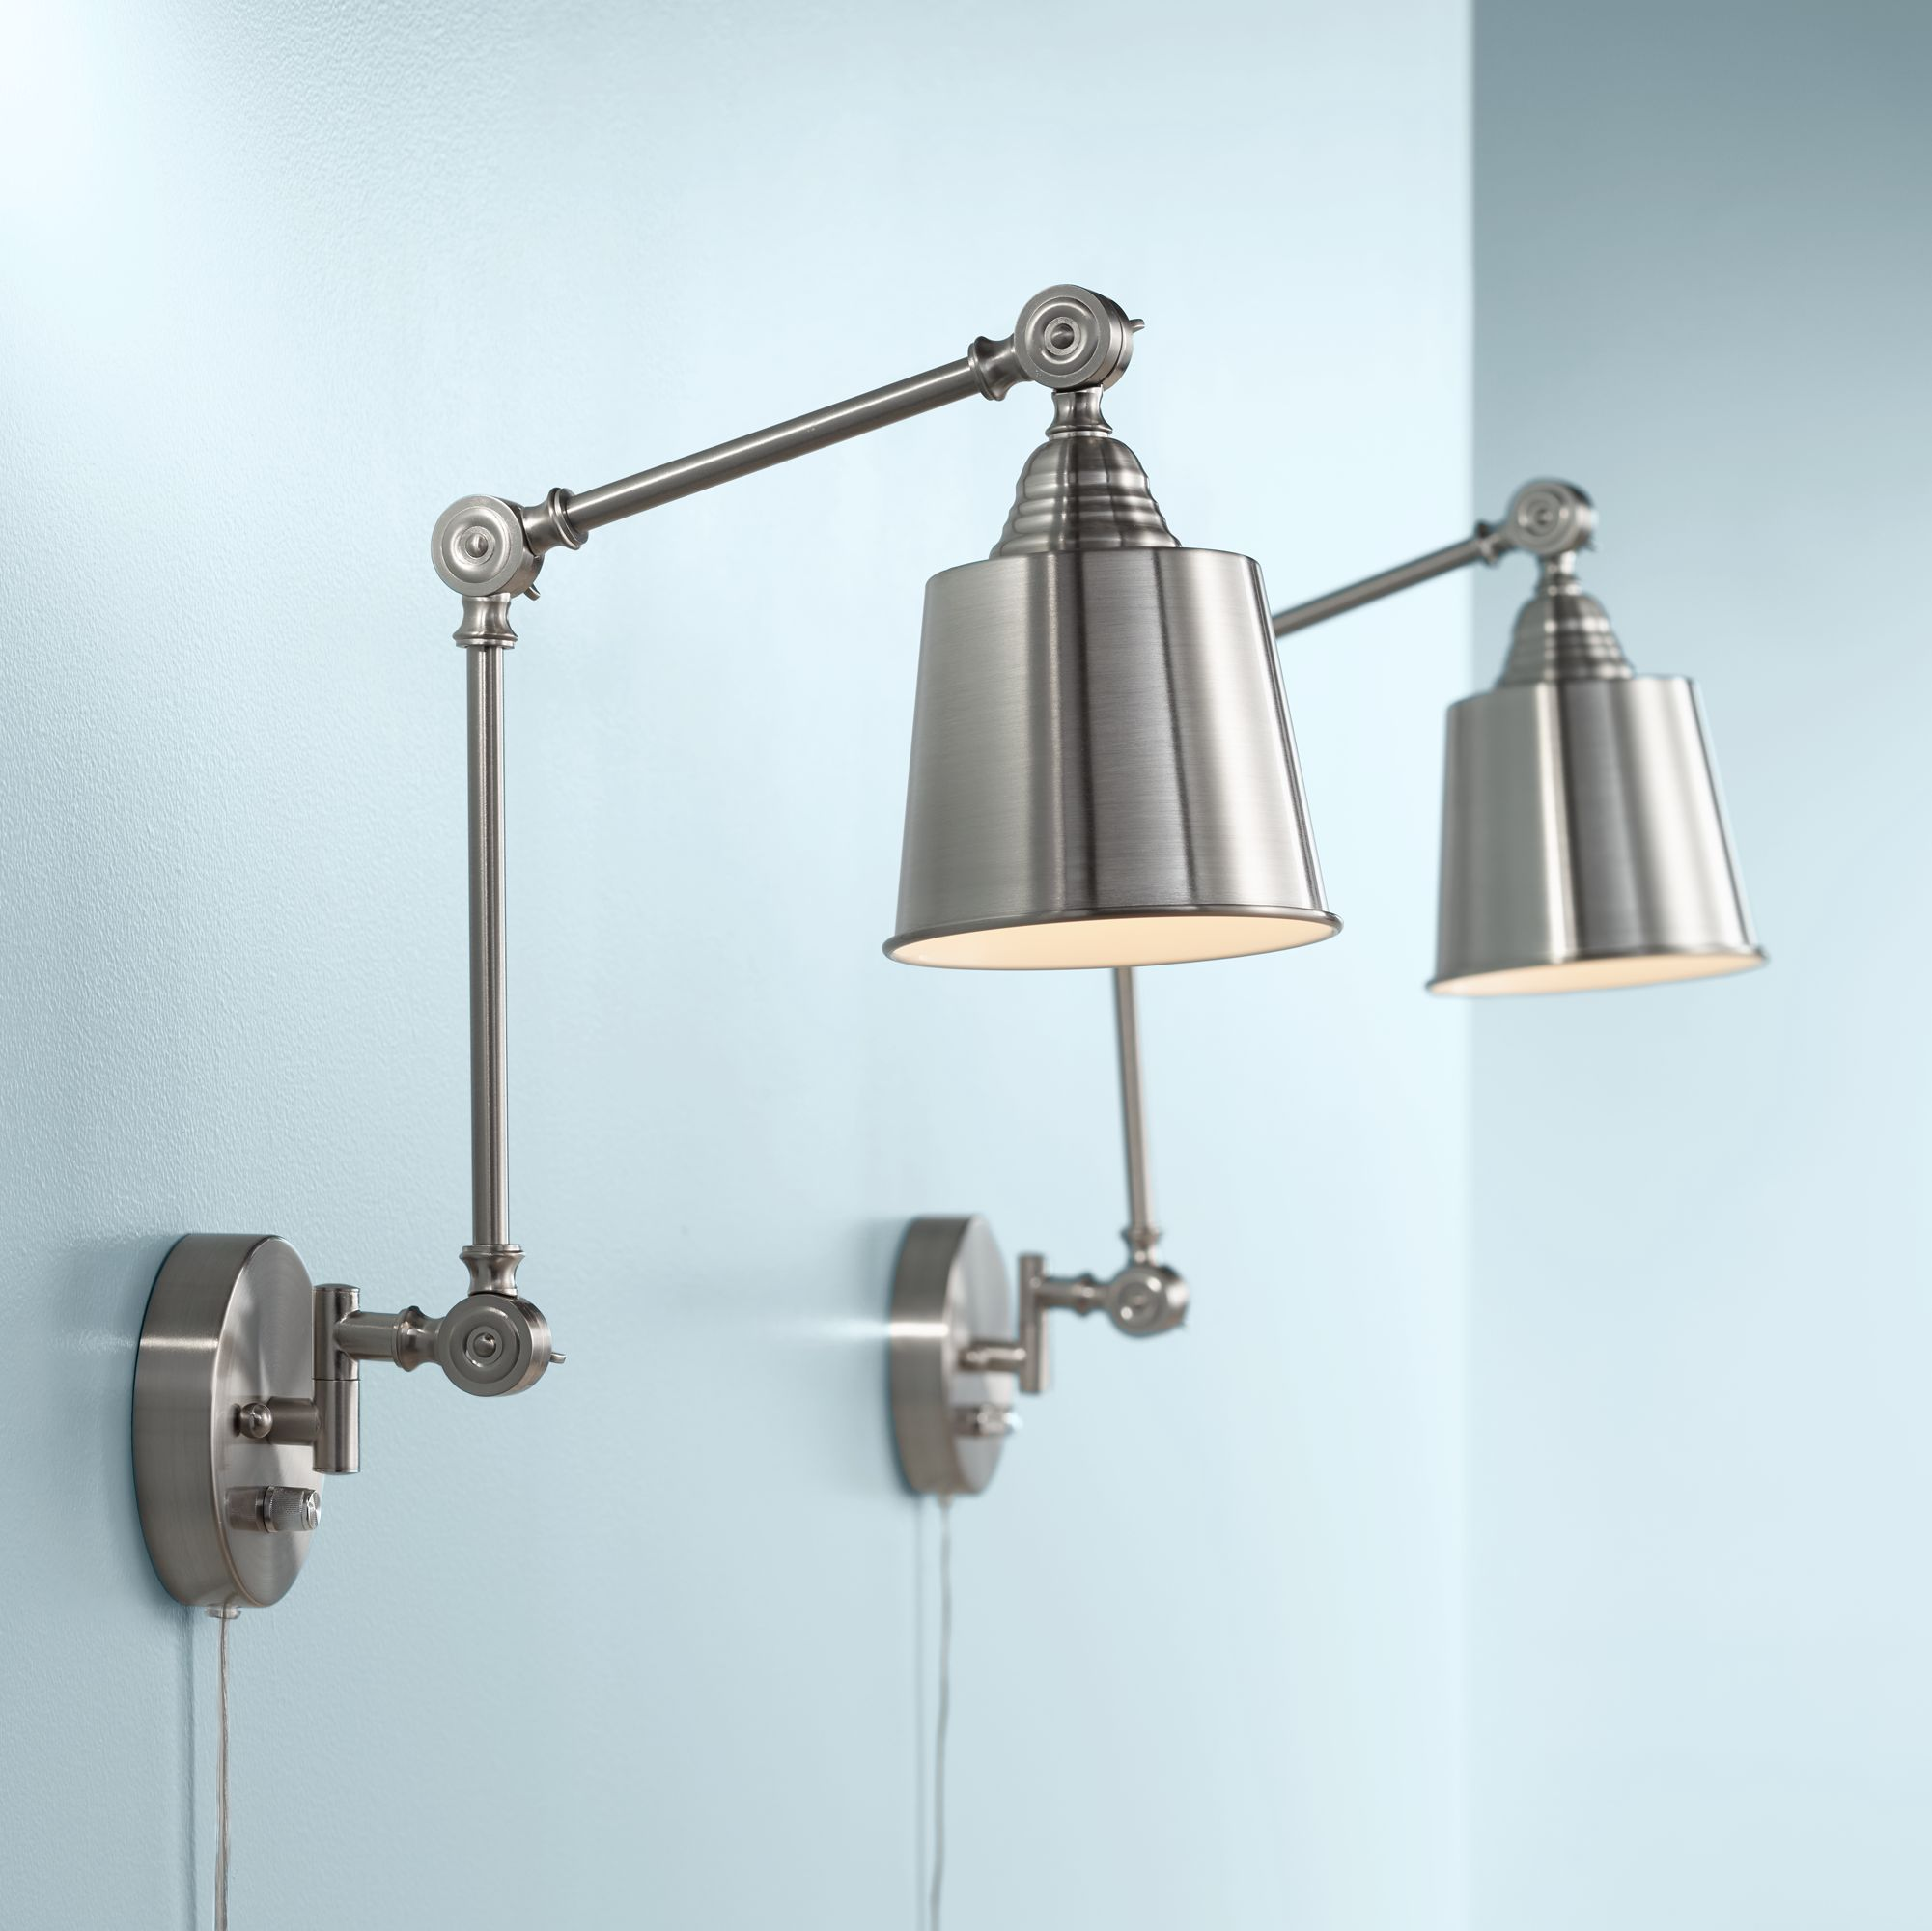 Superieur Set Of 2 Mendes Brushed Steel Plug In Wall Lamps